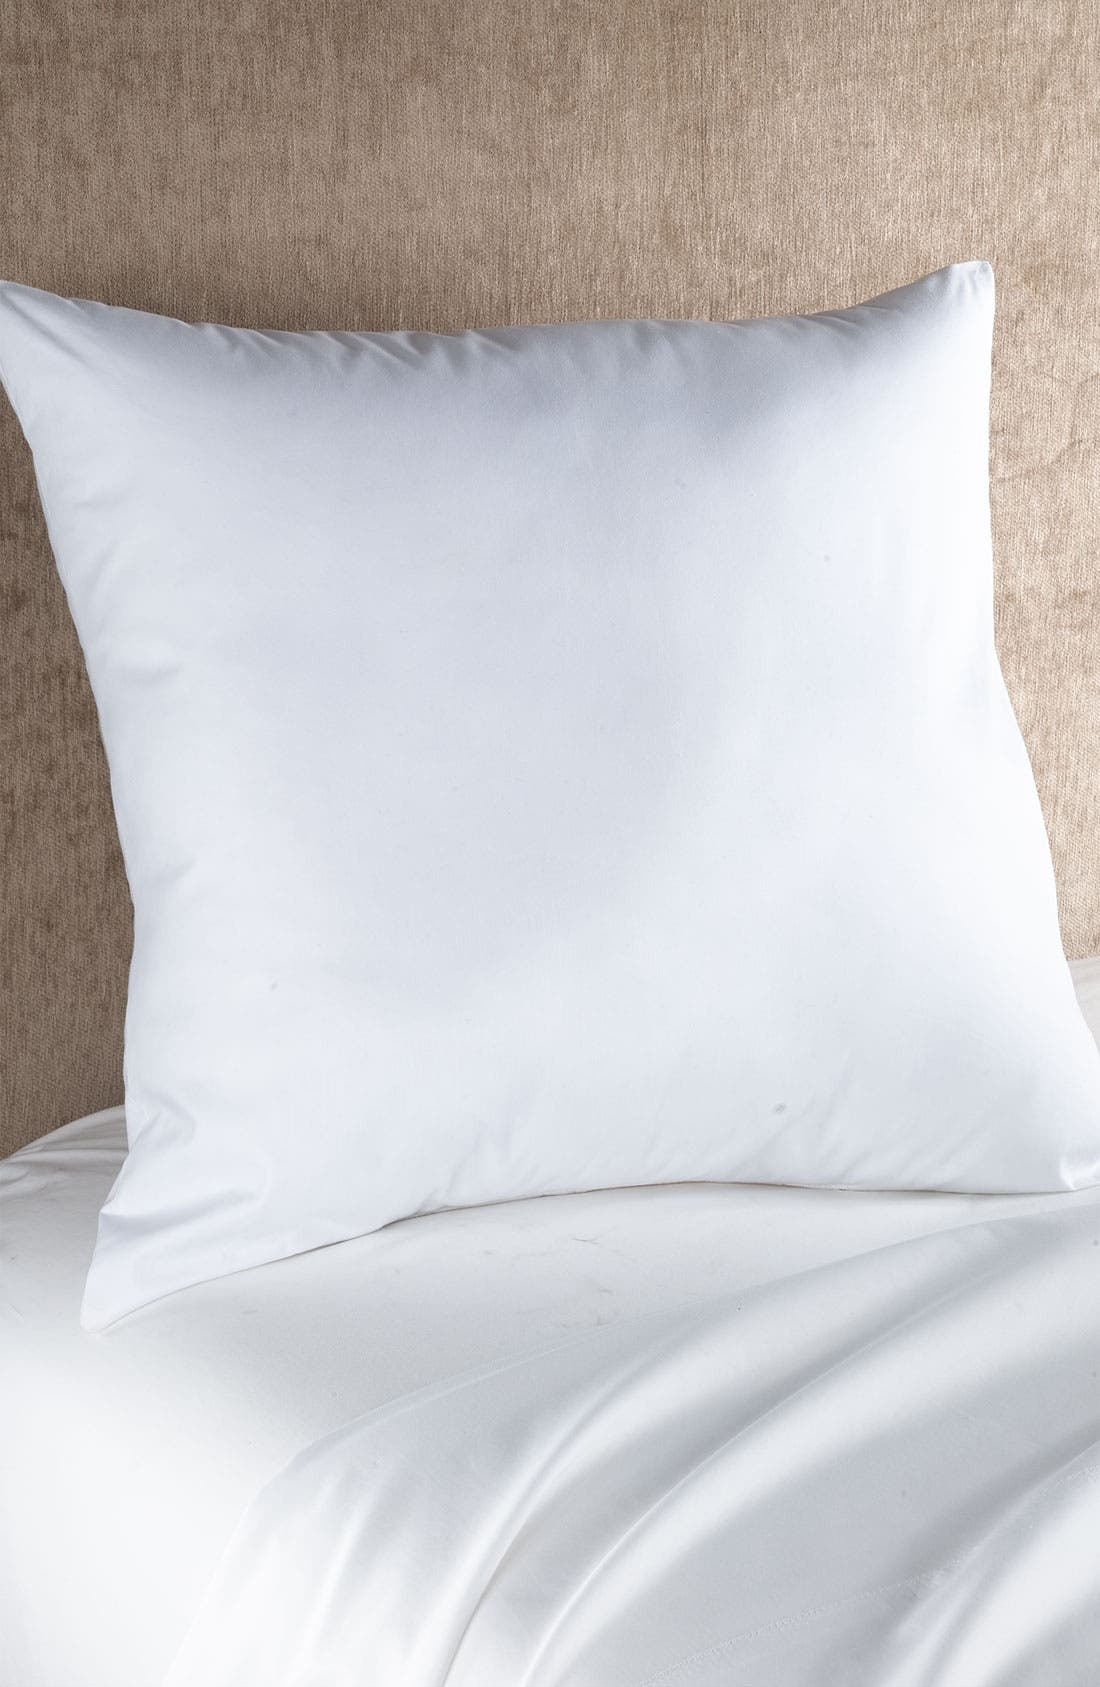 main image nordstrom at home down euro pillow insert